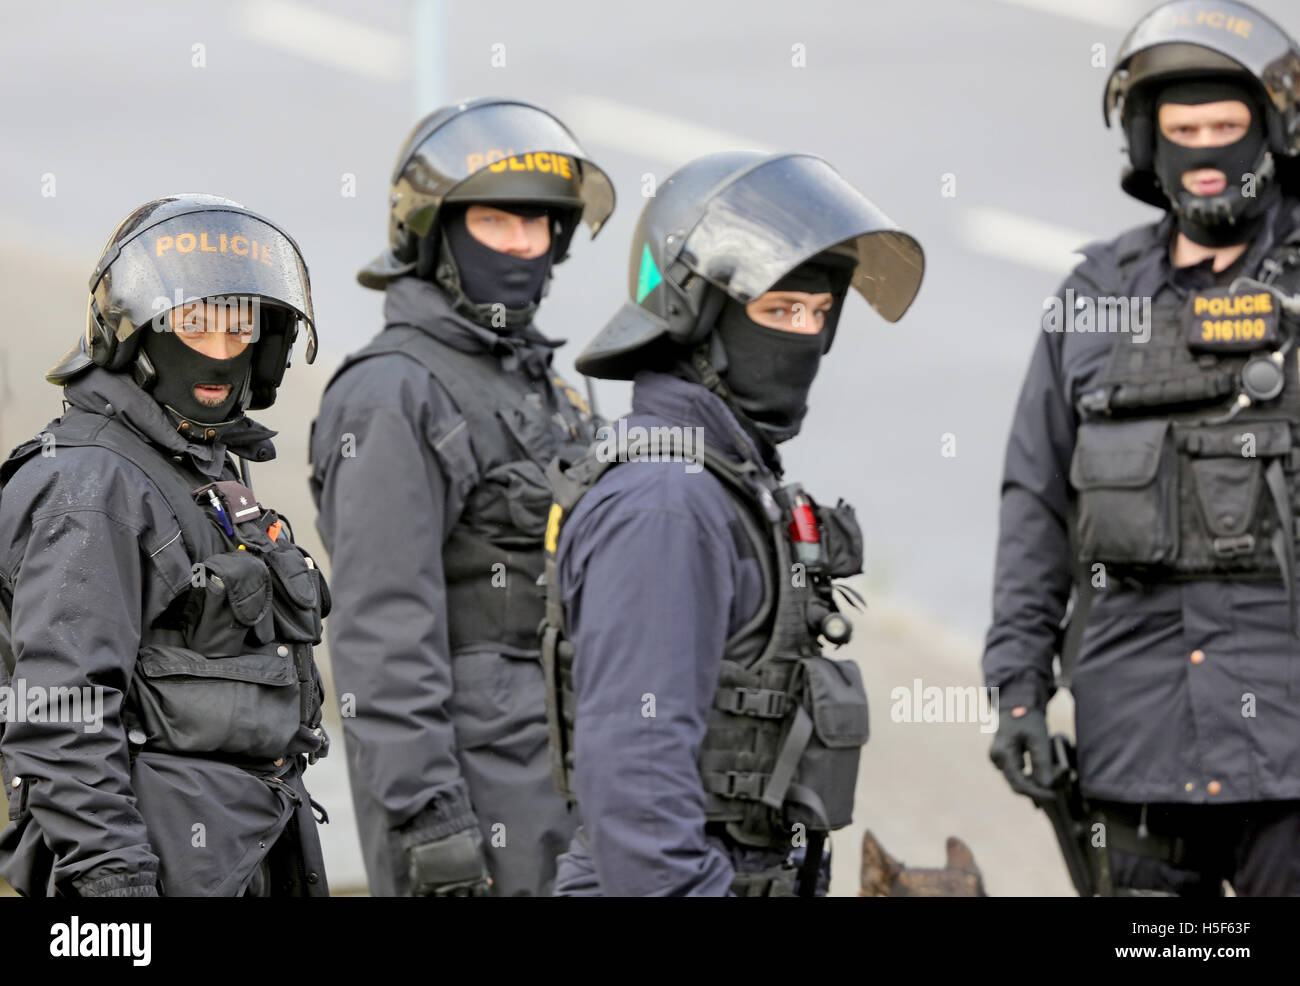 Deutschneudorf, Germany. 19th Oct, 2016. Czech and German policeman practice a joined drill in Deutschneudorf, Germany, - Stock Image